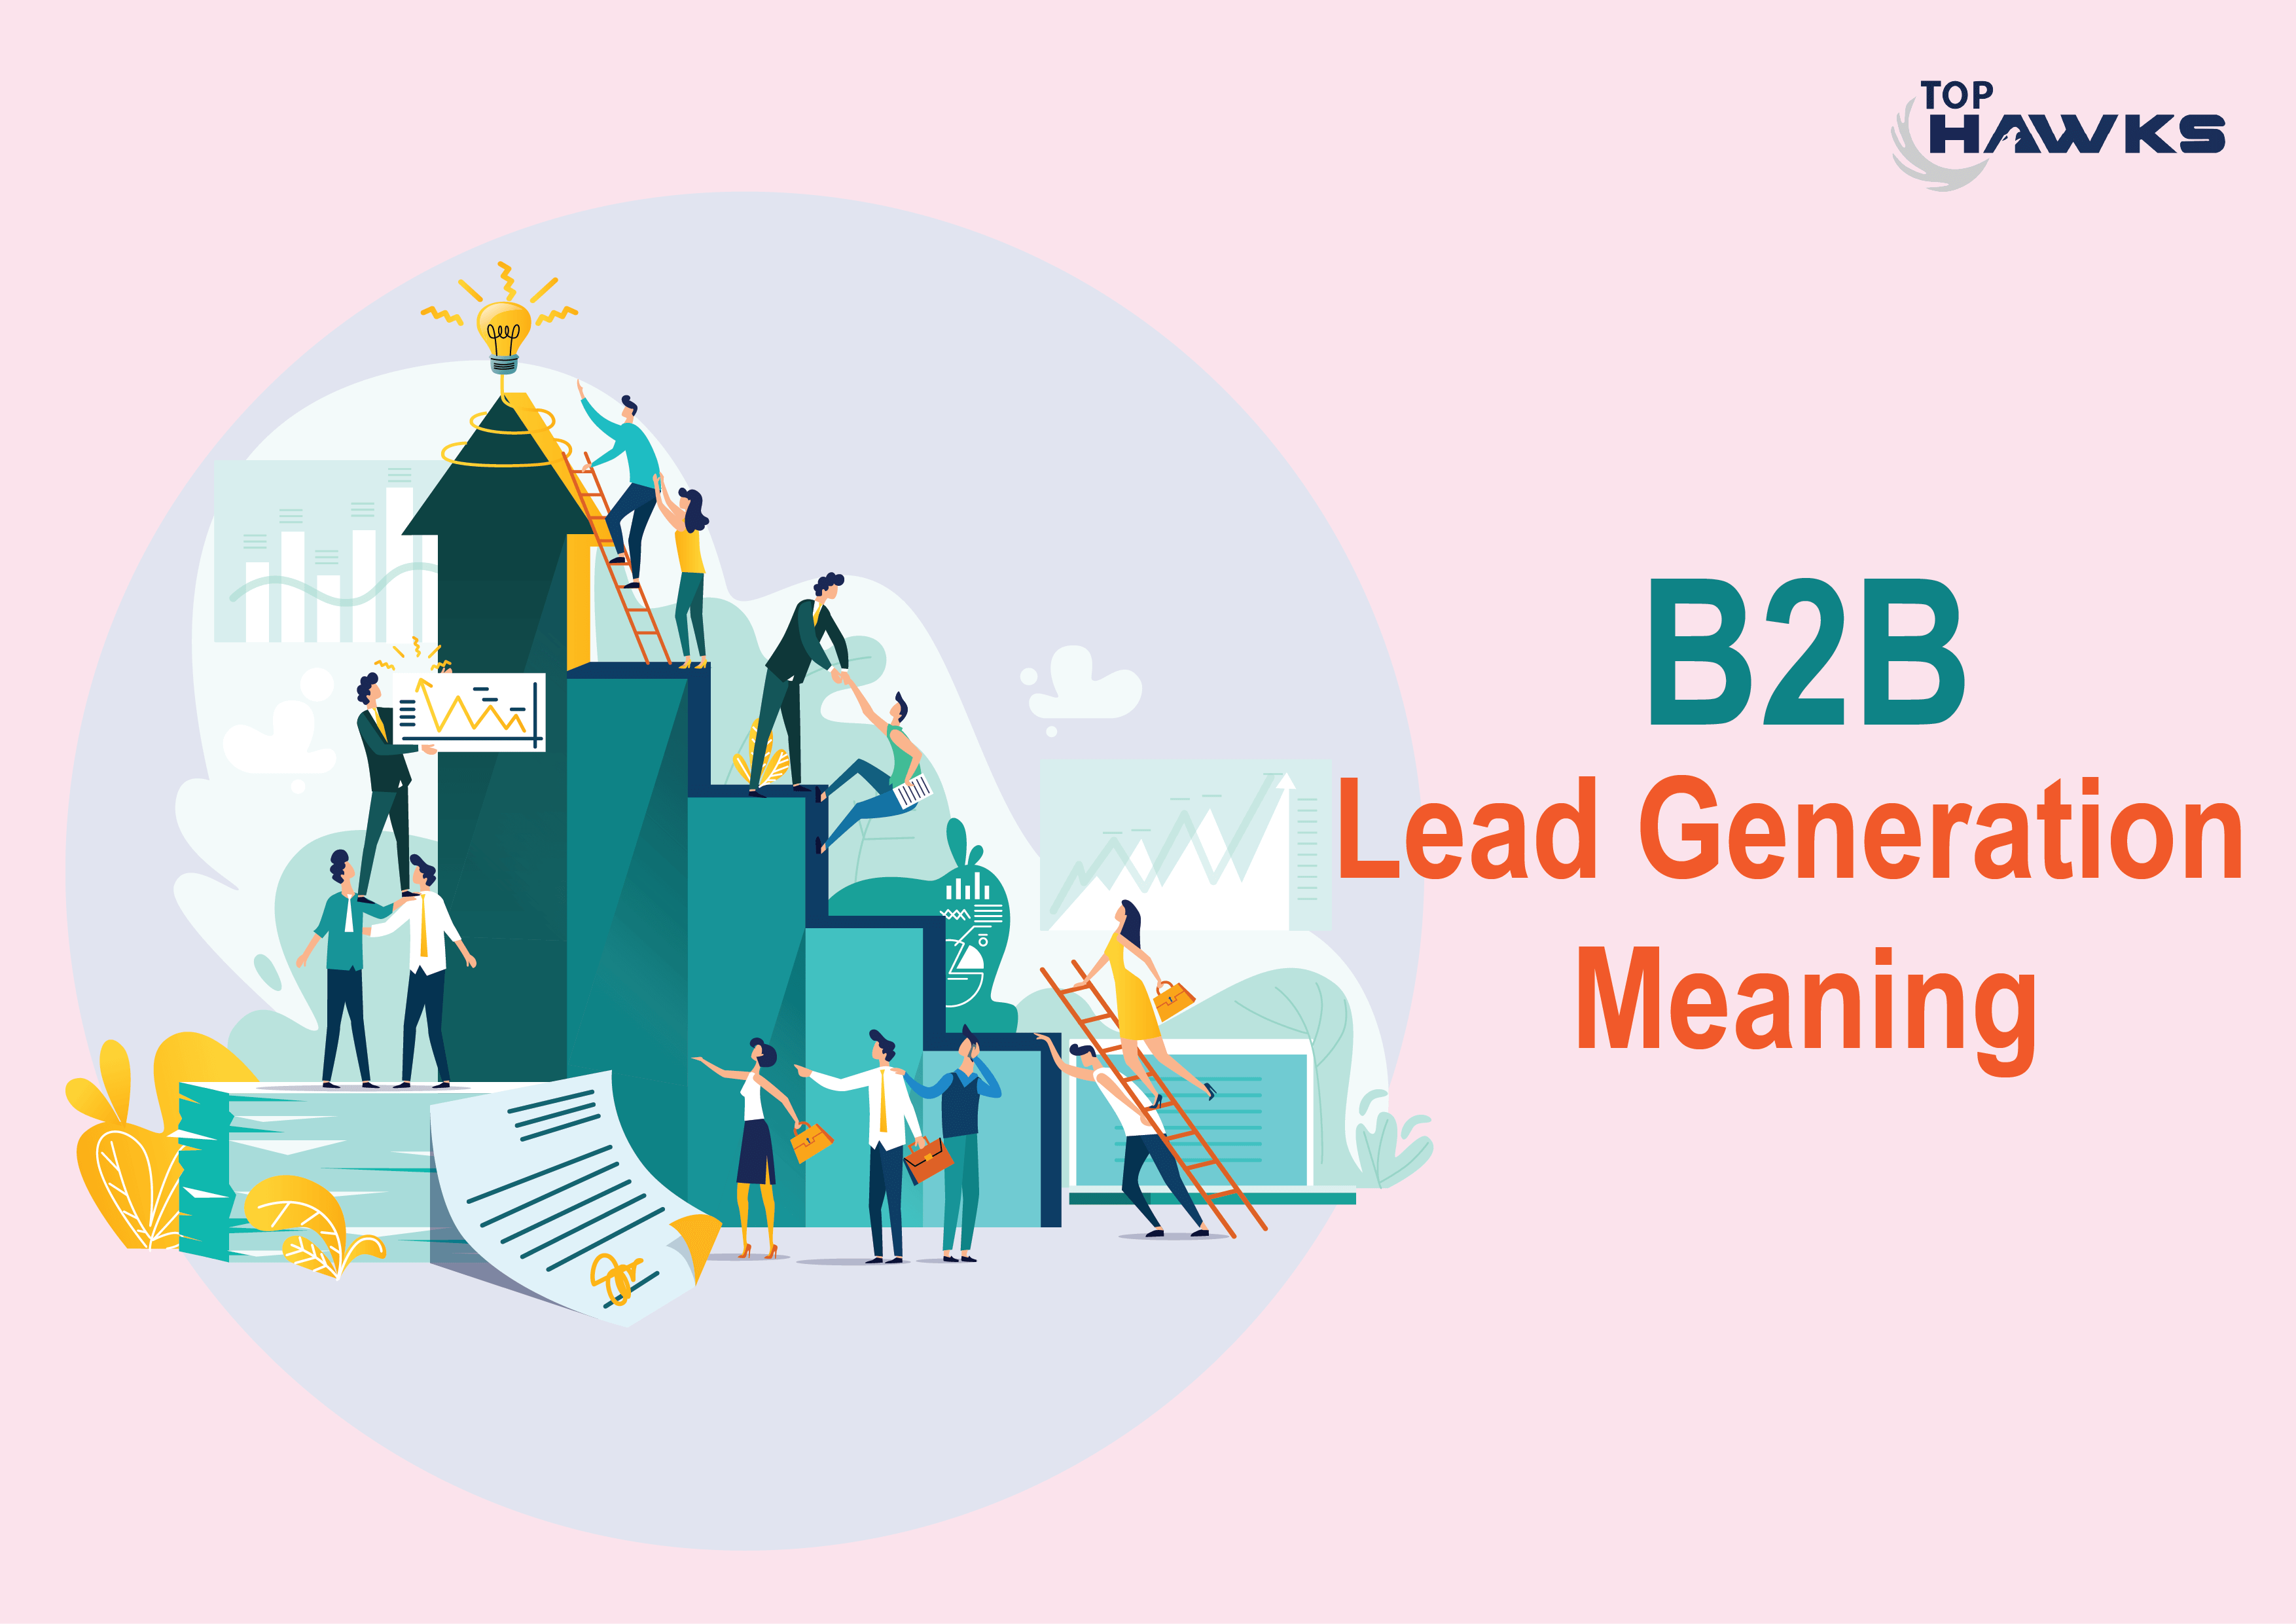 WHAT ARE THE COMMON B2B LEAD GENERATION MISTAKES AND HOW TO TACKLE THOSE???